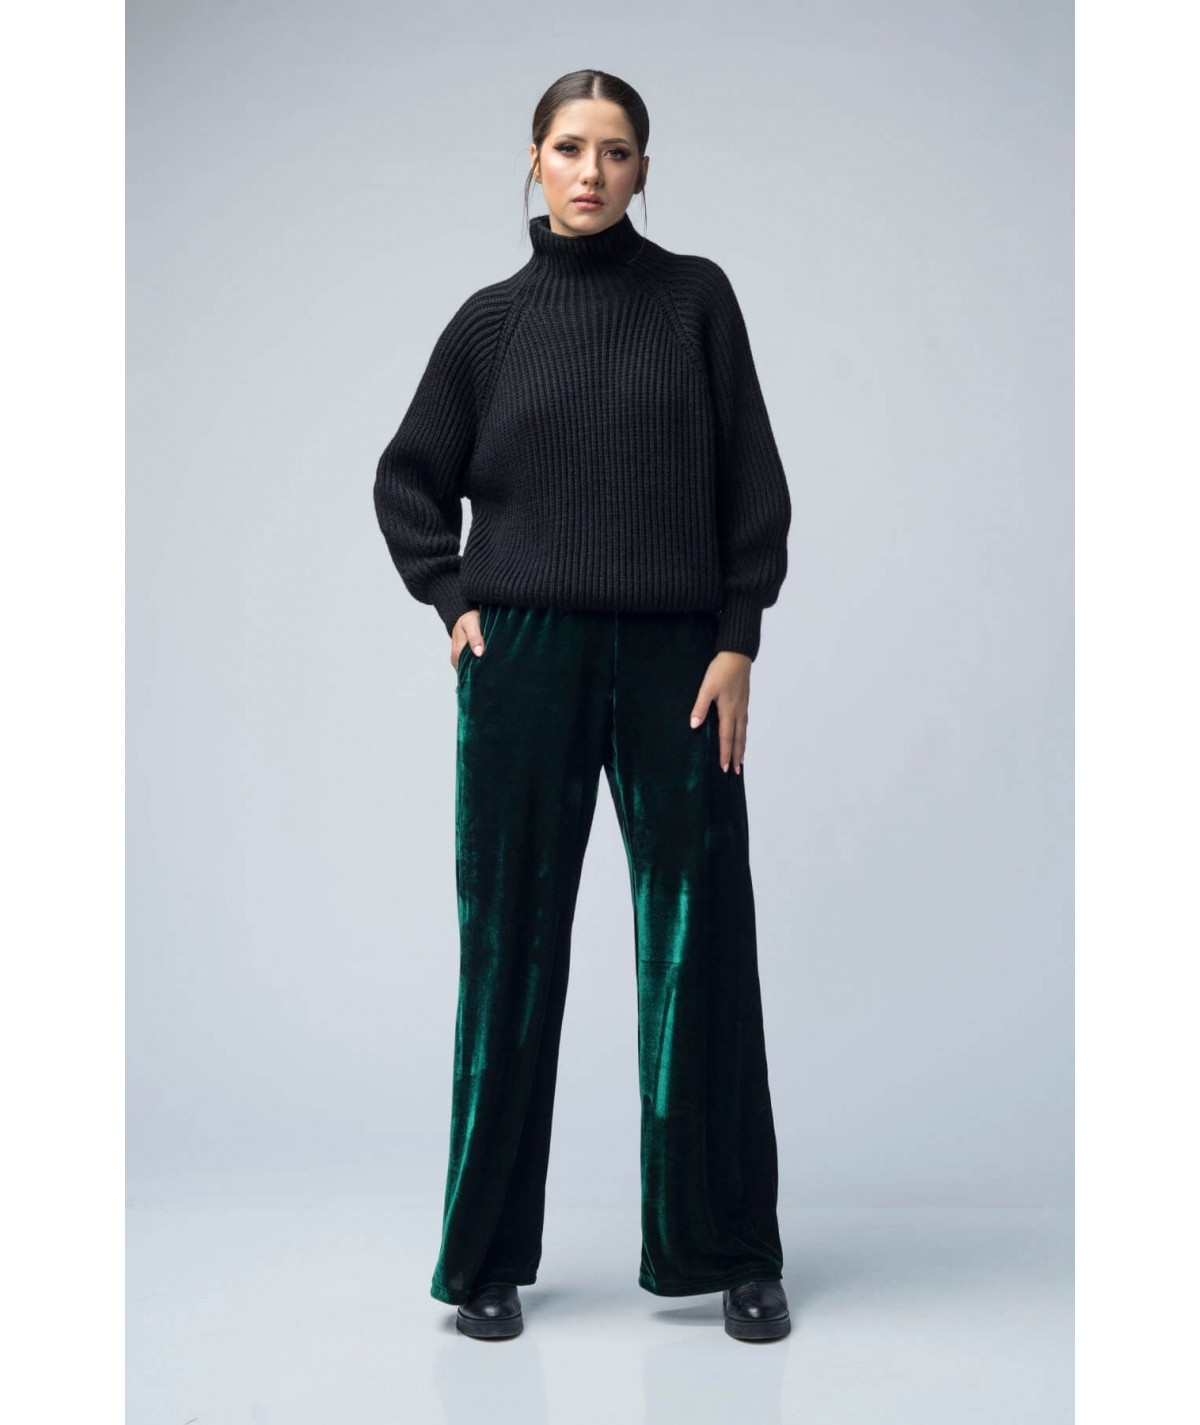 Women's wide velvet trousers